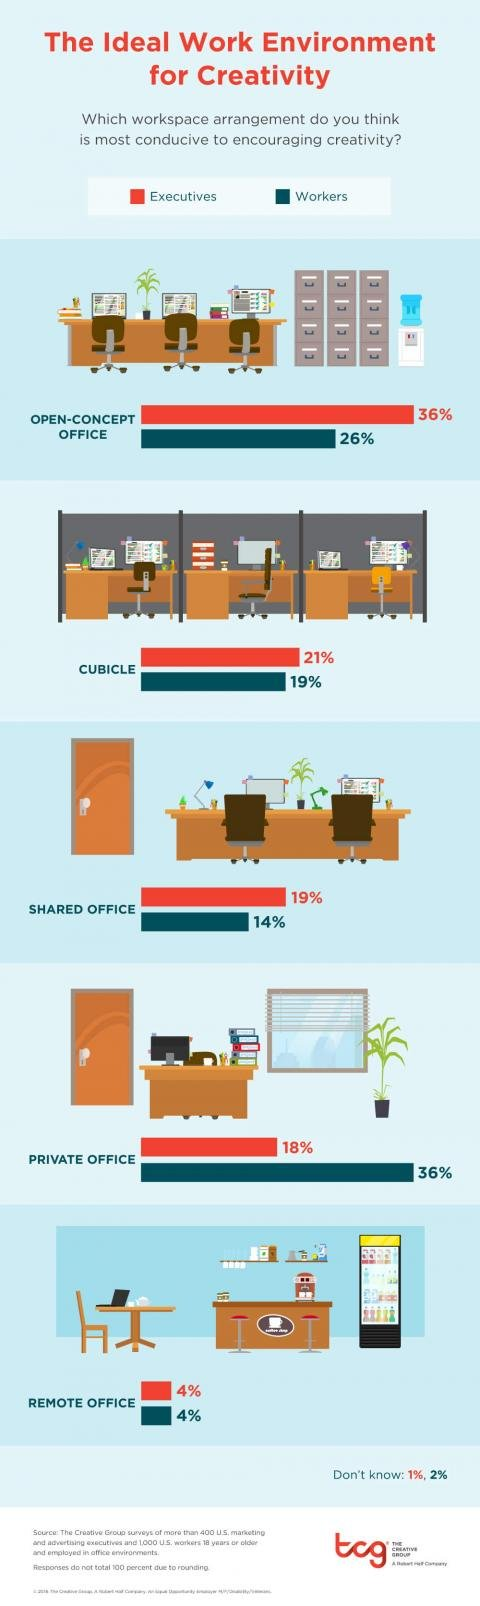 An infographic featuring the results of a survey from The Creative Group about the ideal work environment for creativity